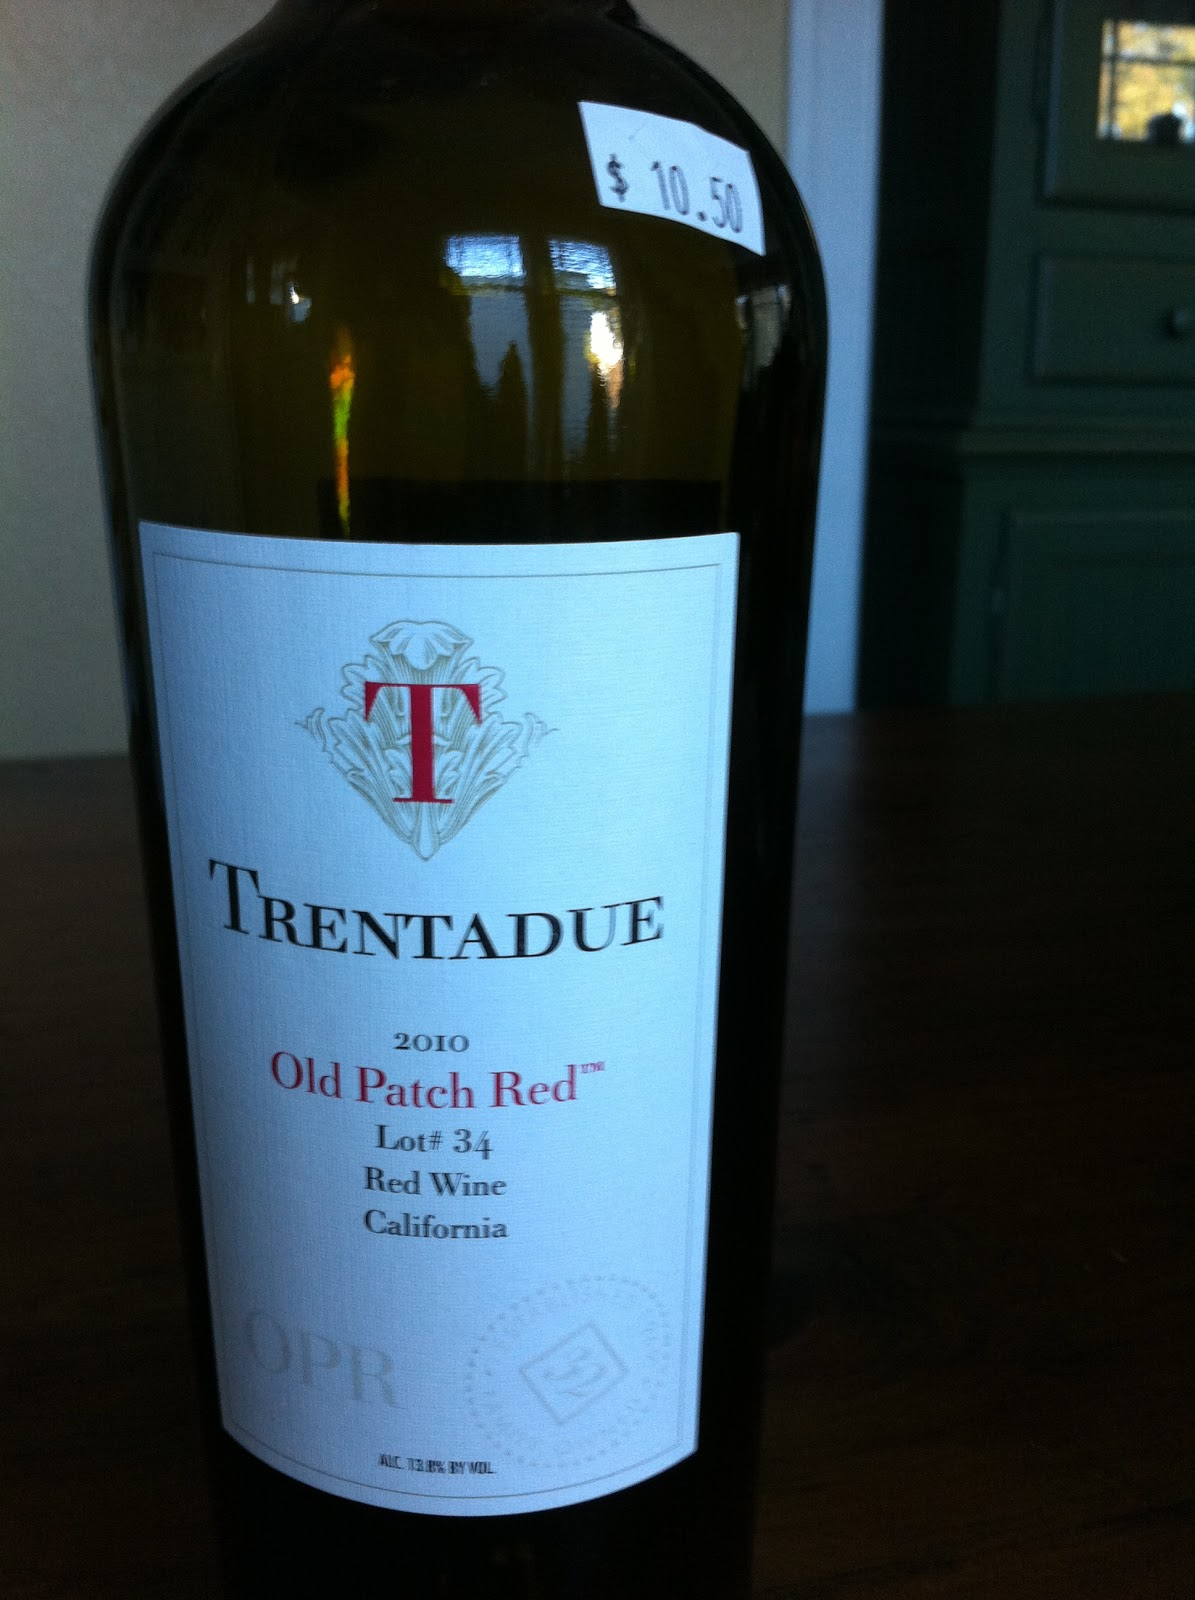 Catalog | 2016 trentadue winery old patch red wine lot #44.